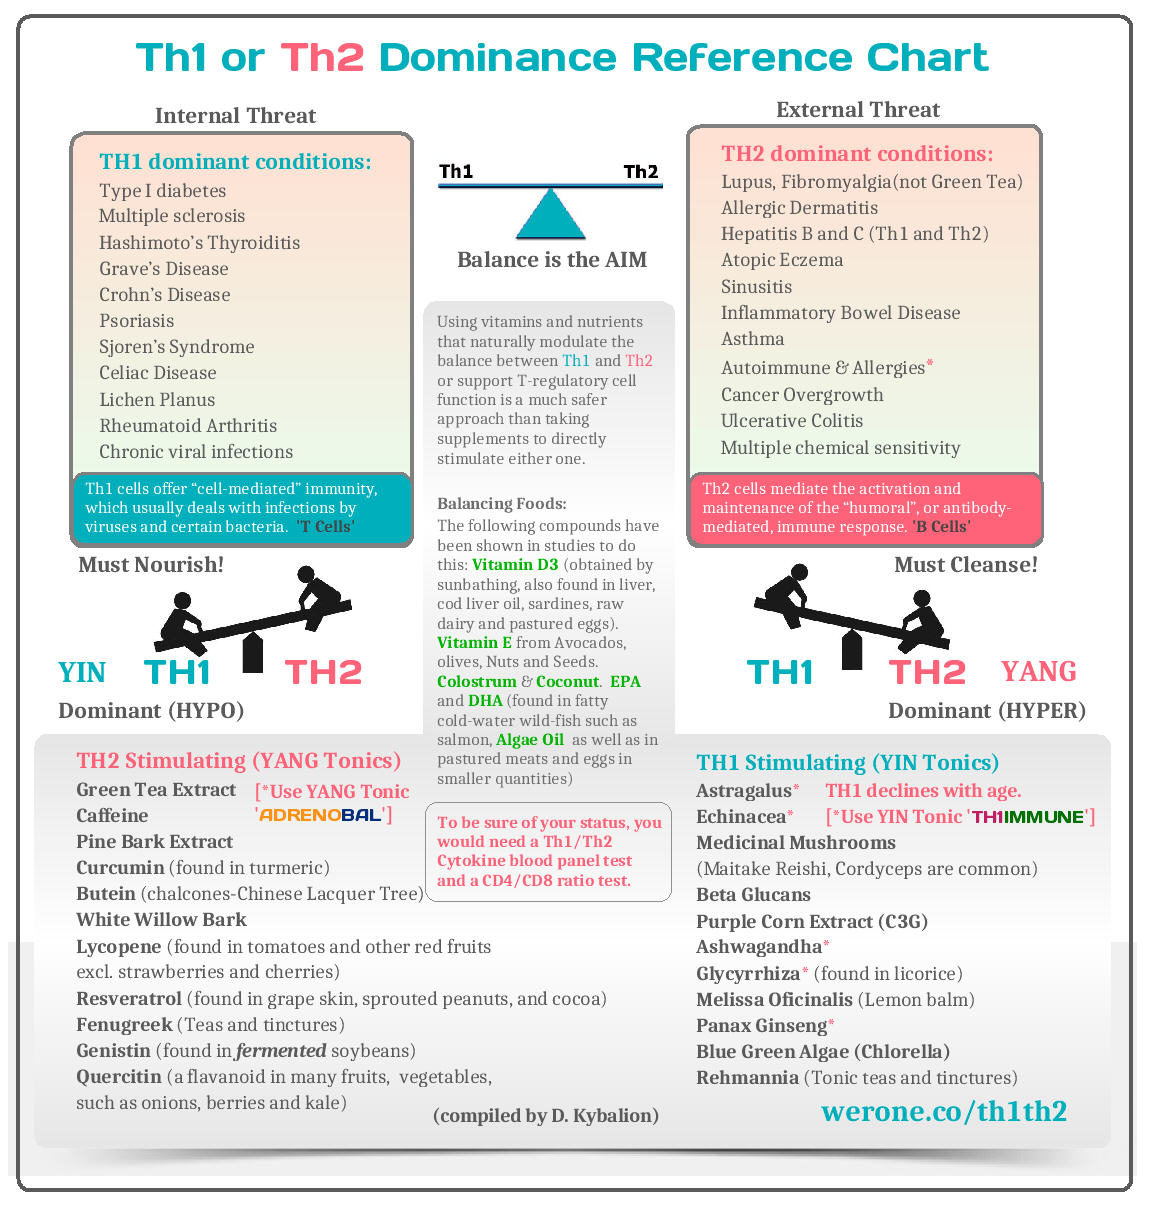 Th1_Th2_Dominance_Reference_Chart_Werone